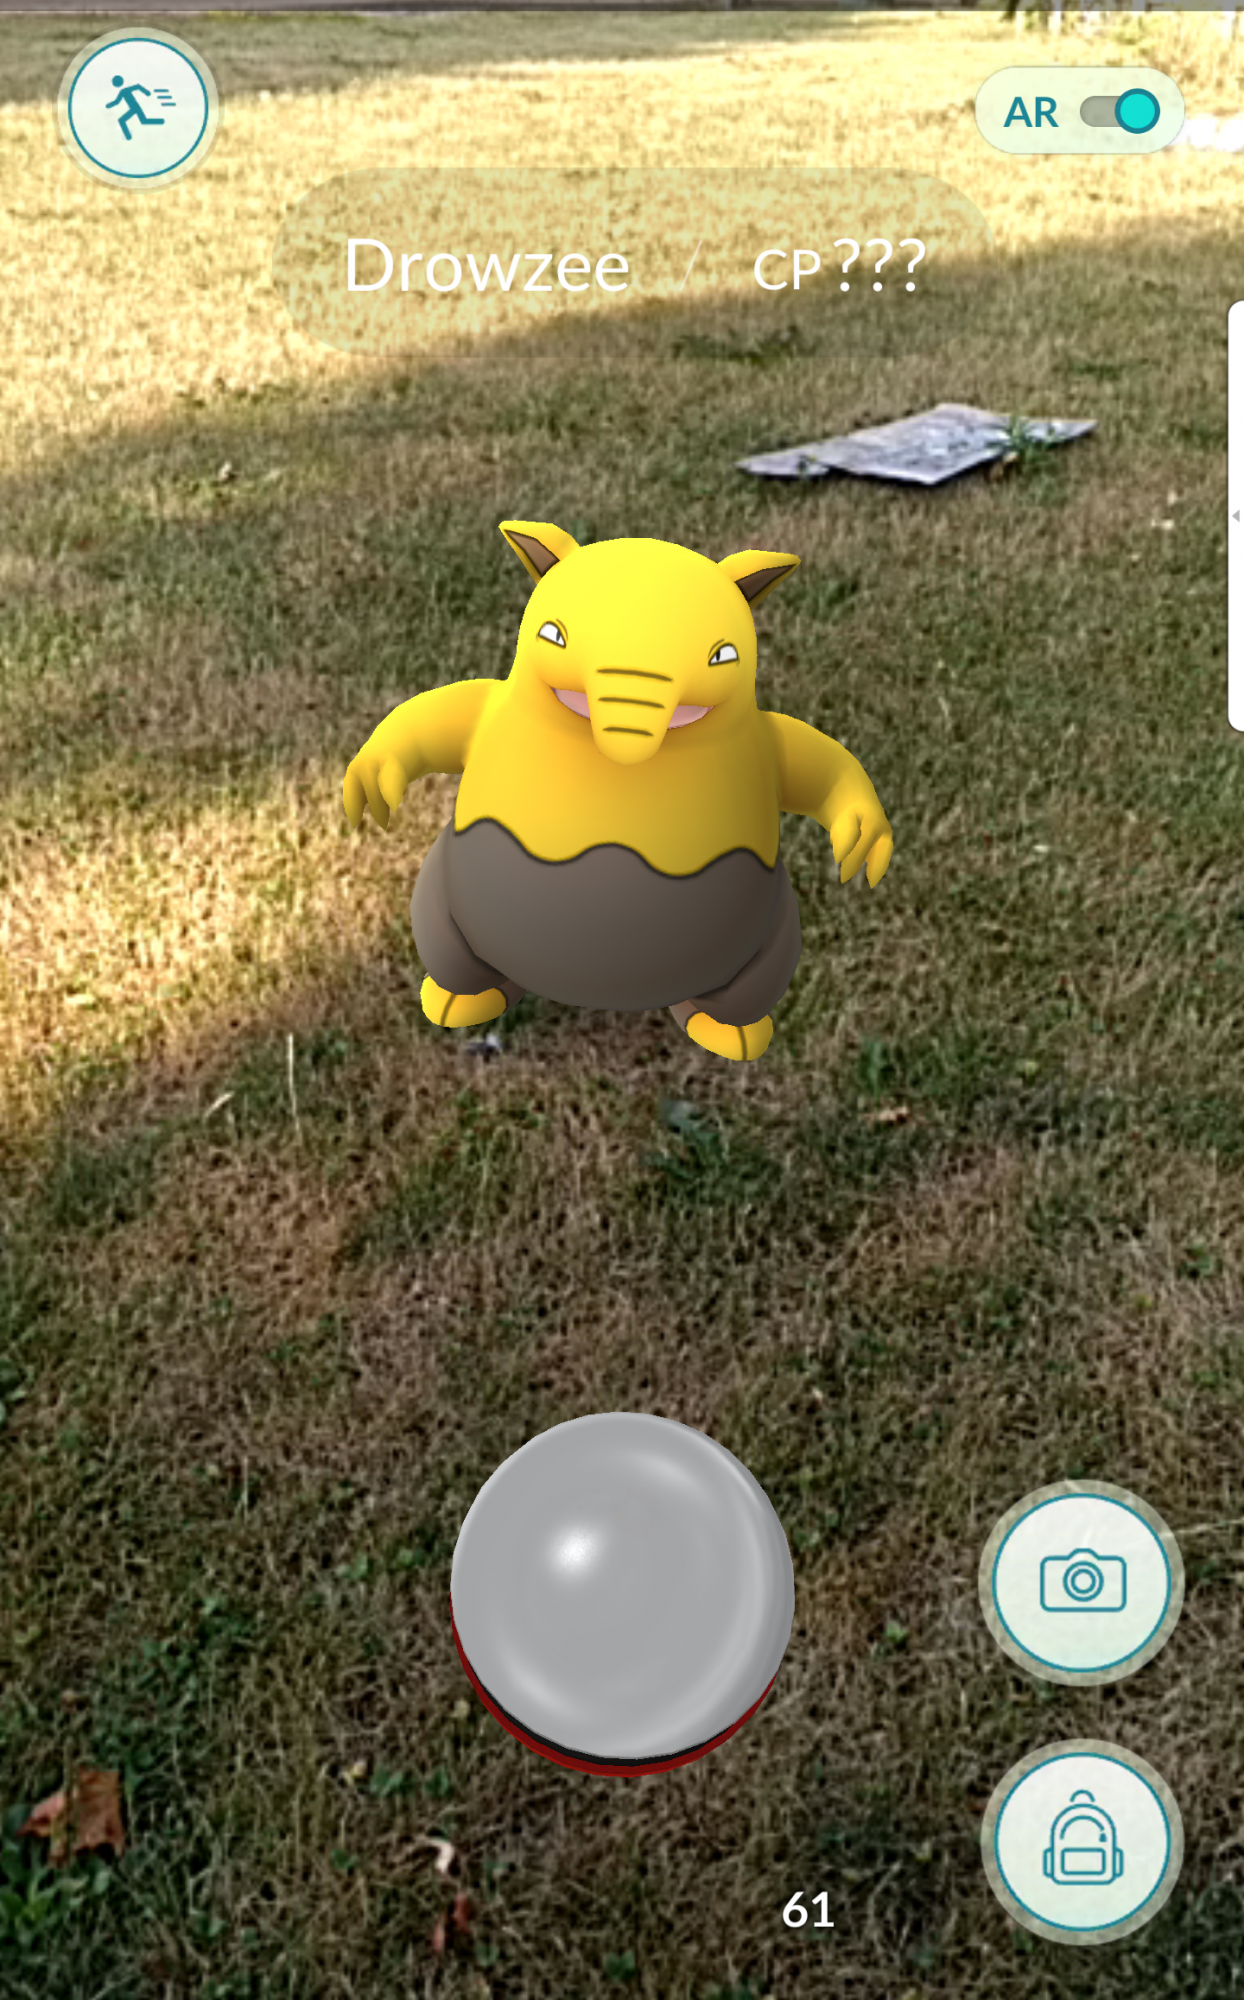 A Drowsee captured on the way to work.